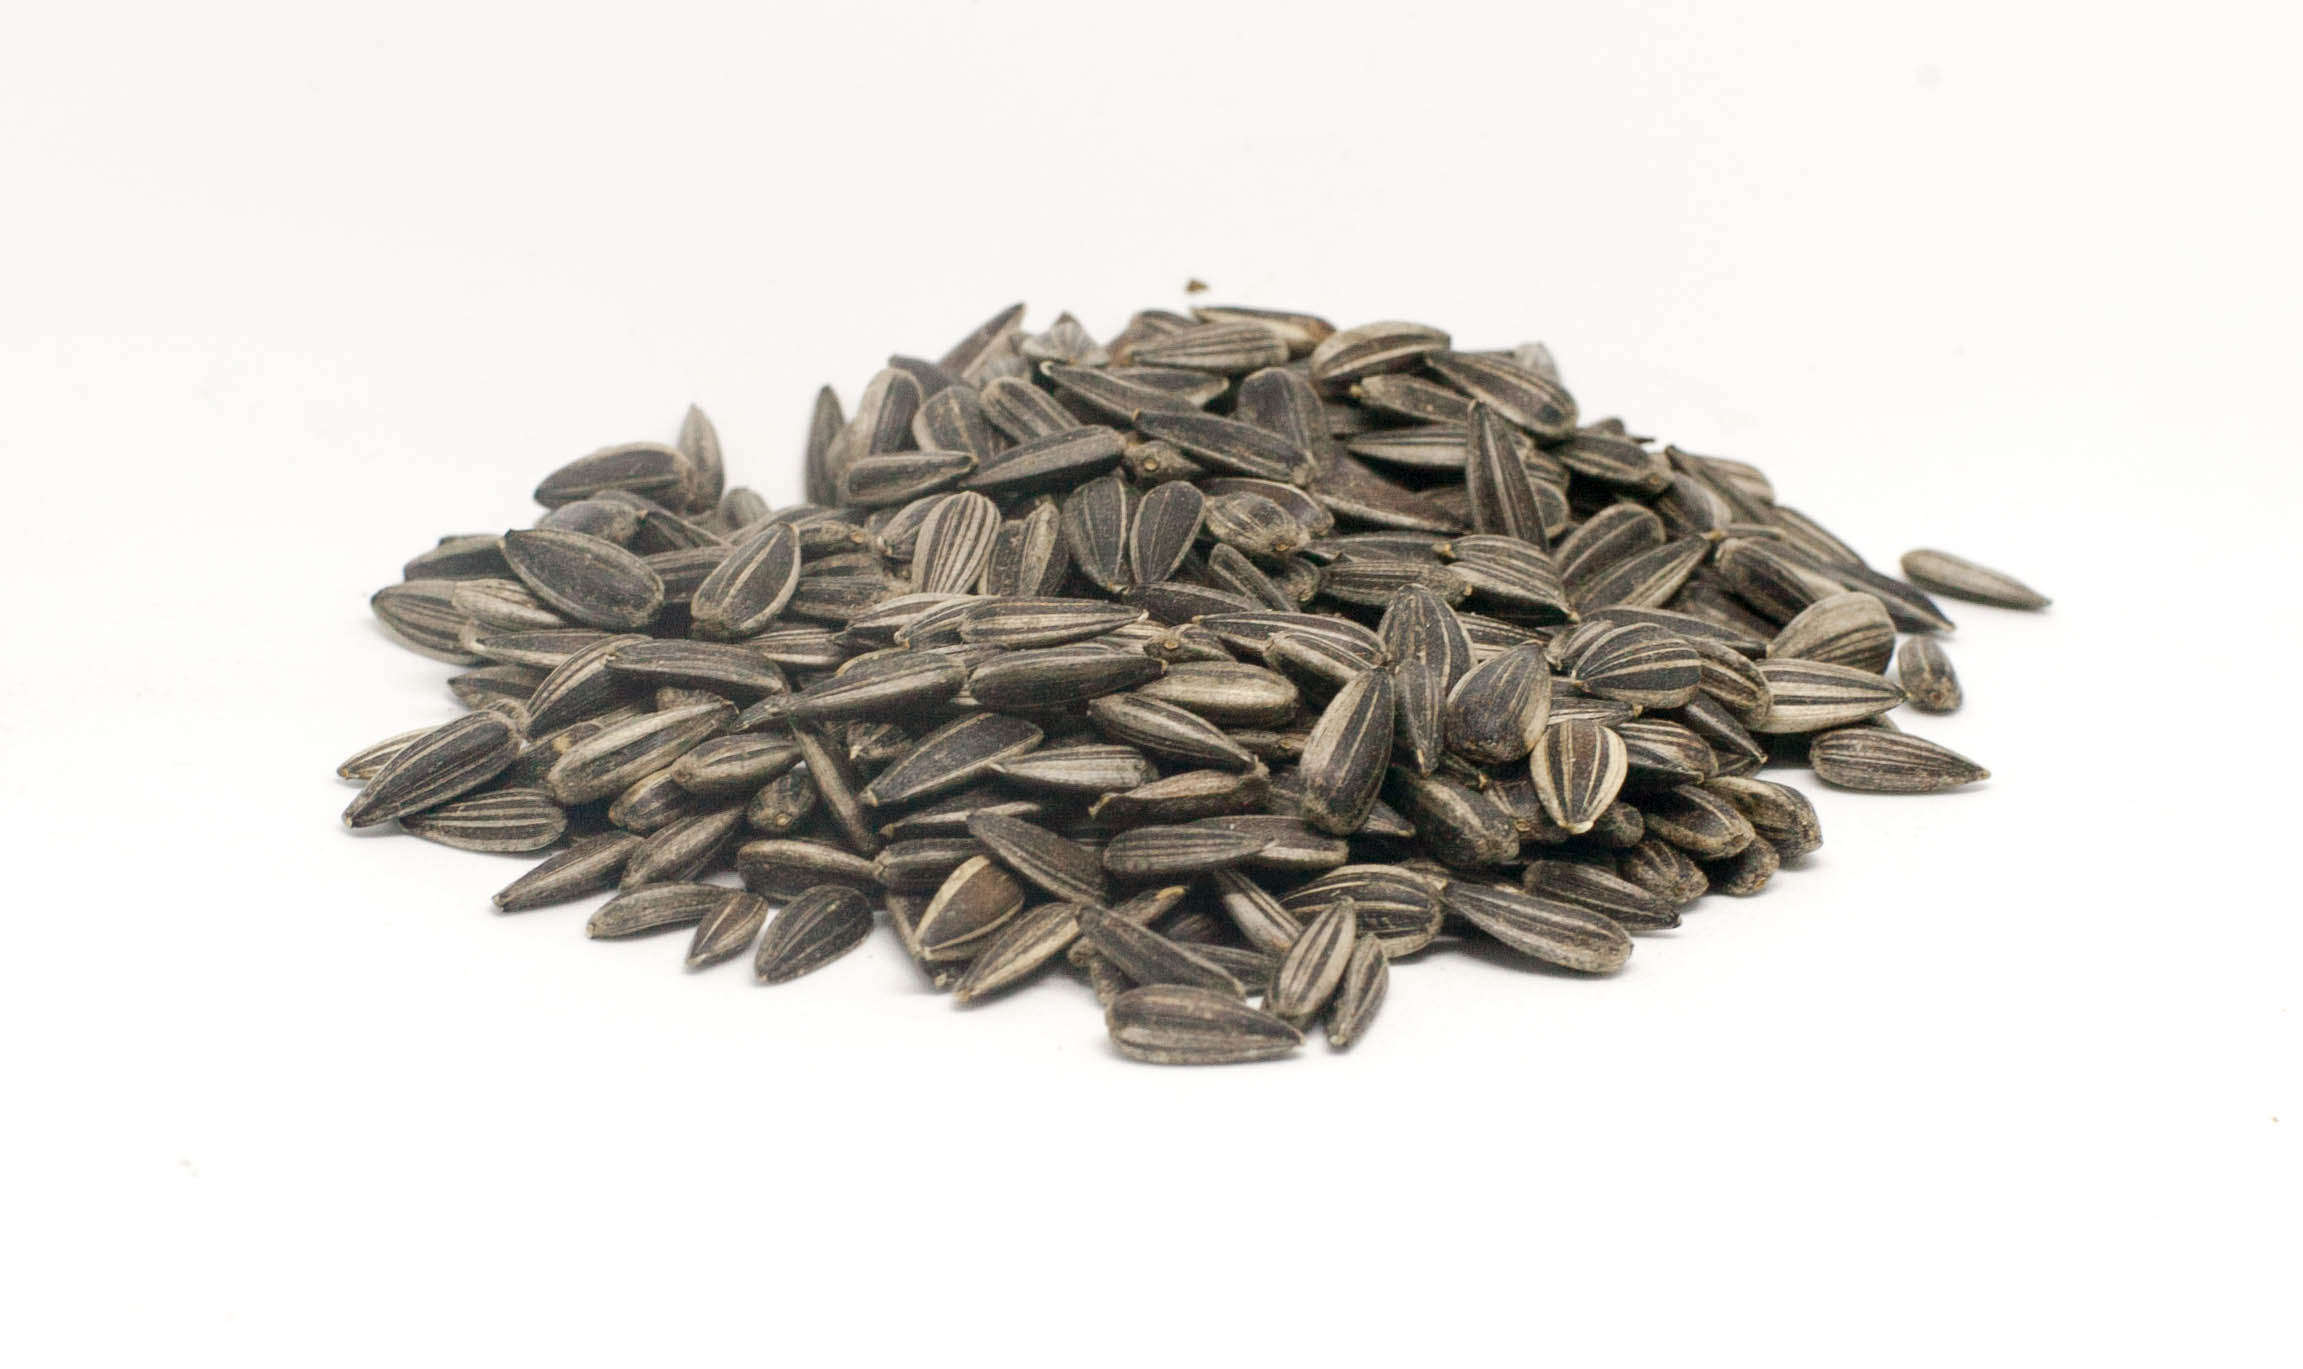 Sunflower seeds LG